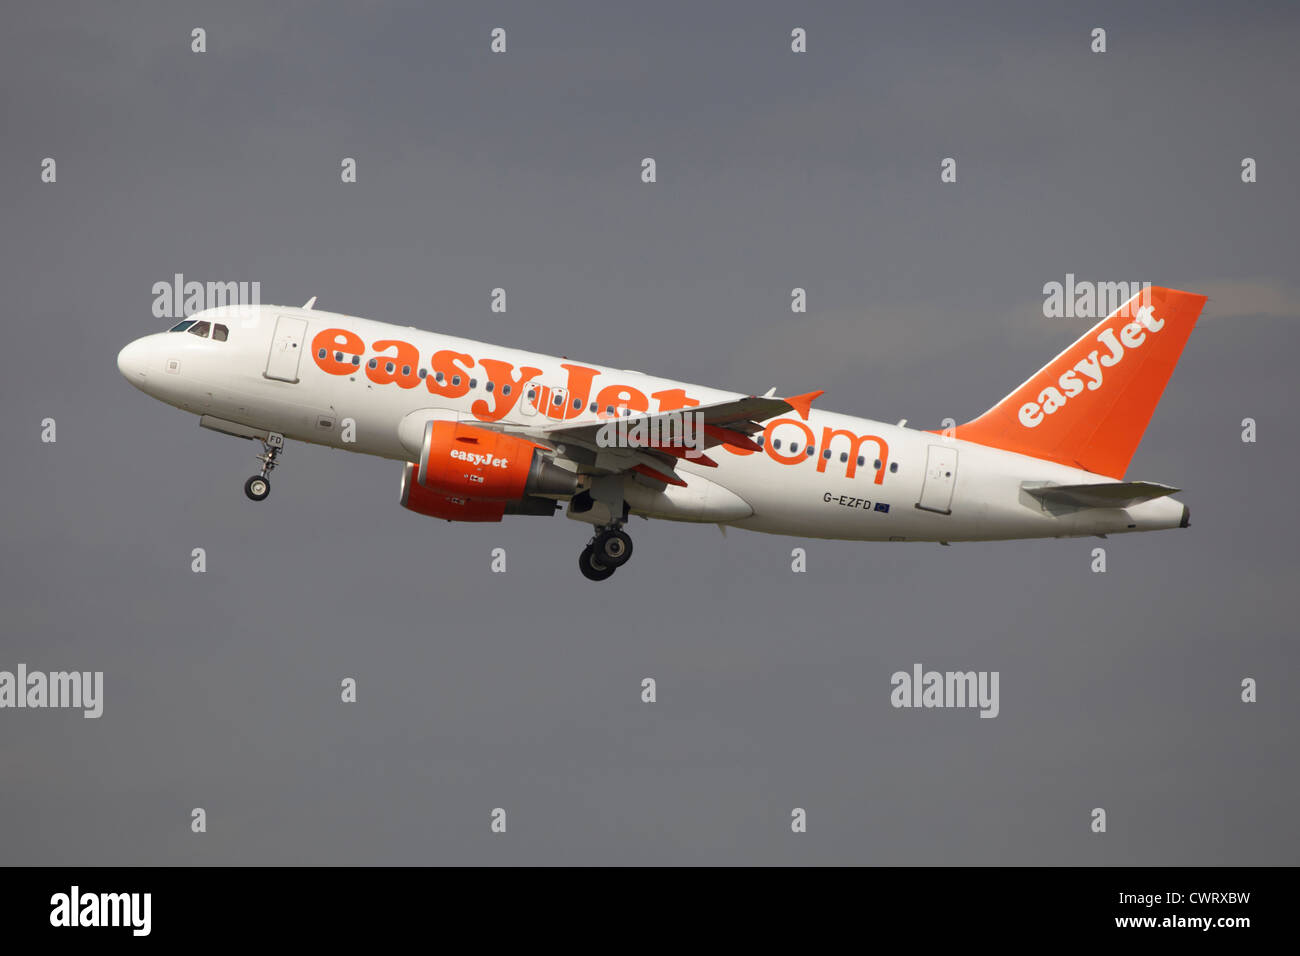 Easyjet Airbus A320 take off at Manchester Airport - Stock Image